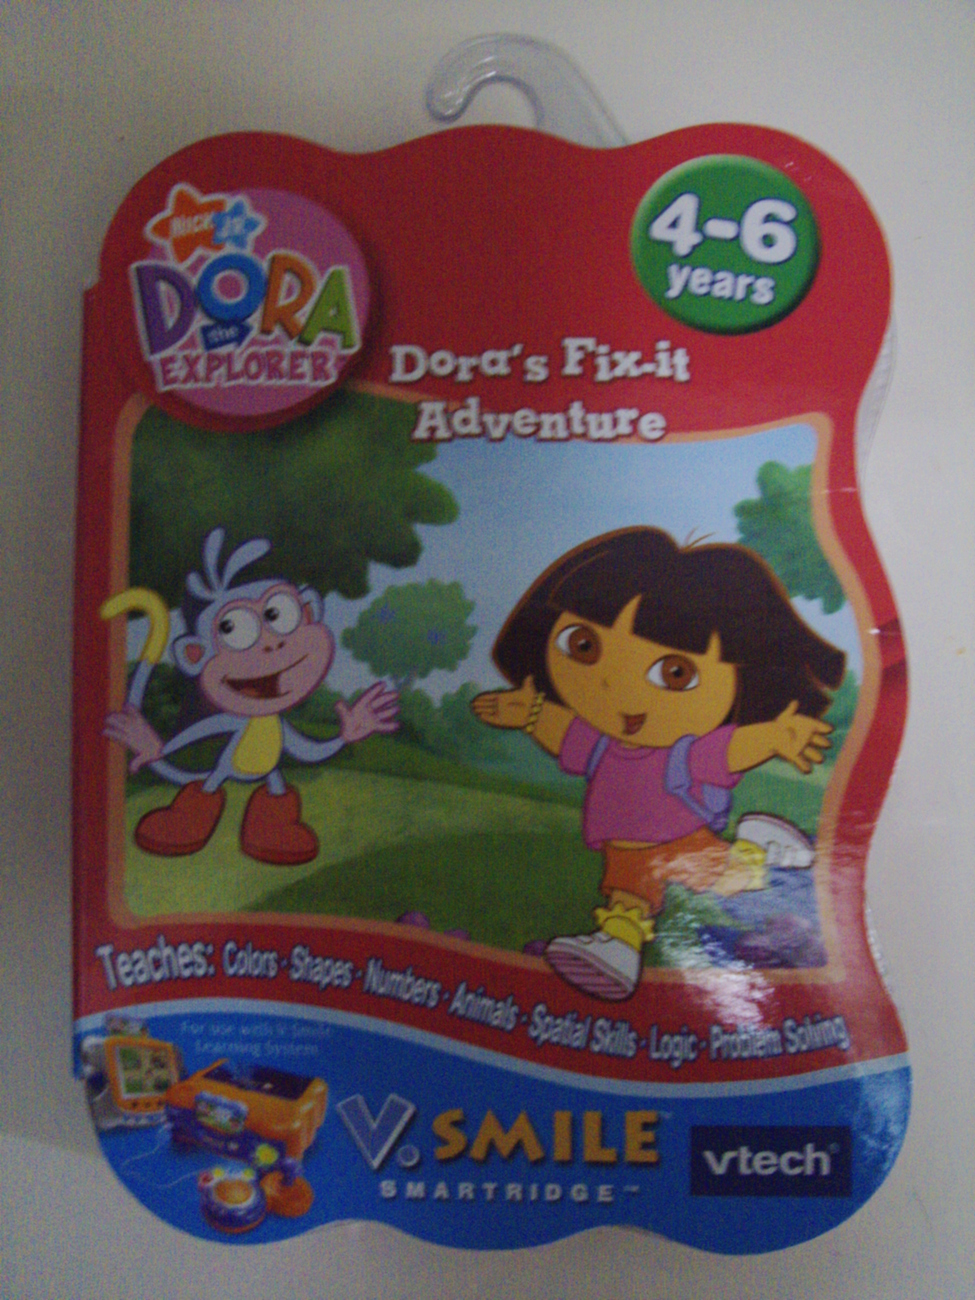 Nick Jr Dora the Explorer Dora's Fix-it Adventure VTech V-Smile smartridge - New